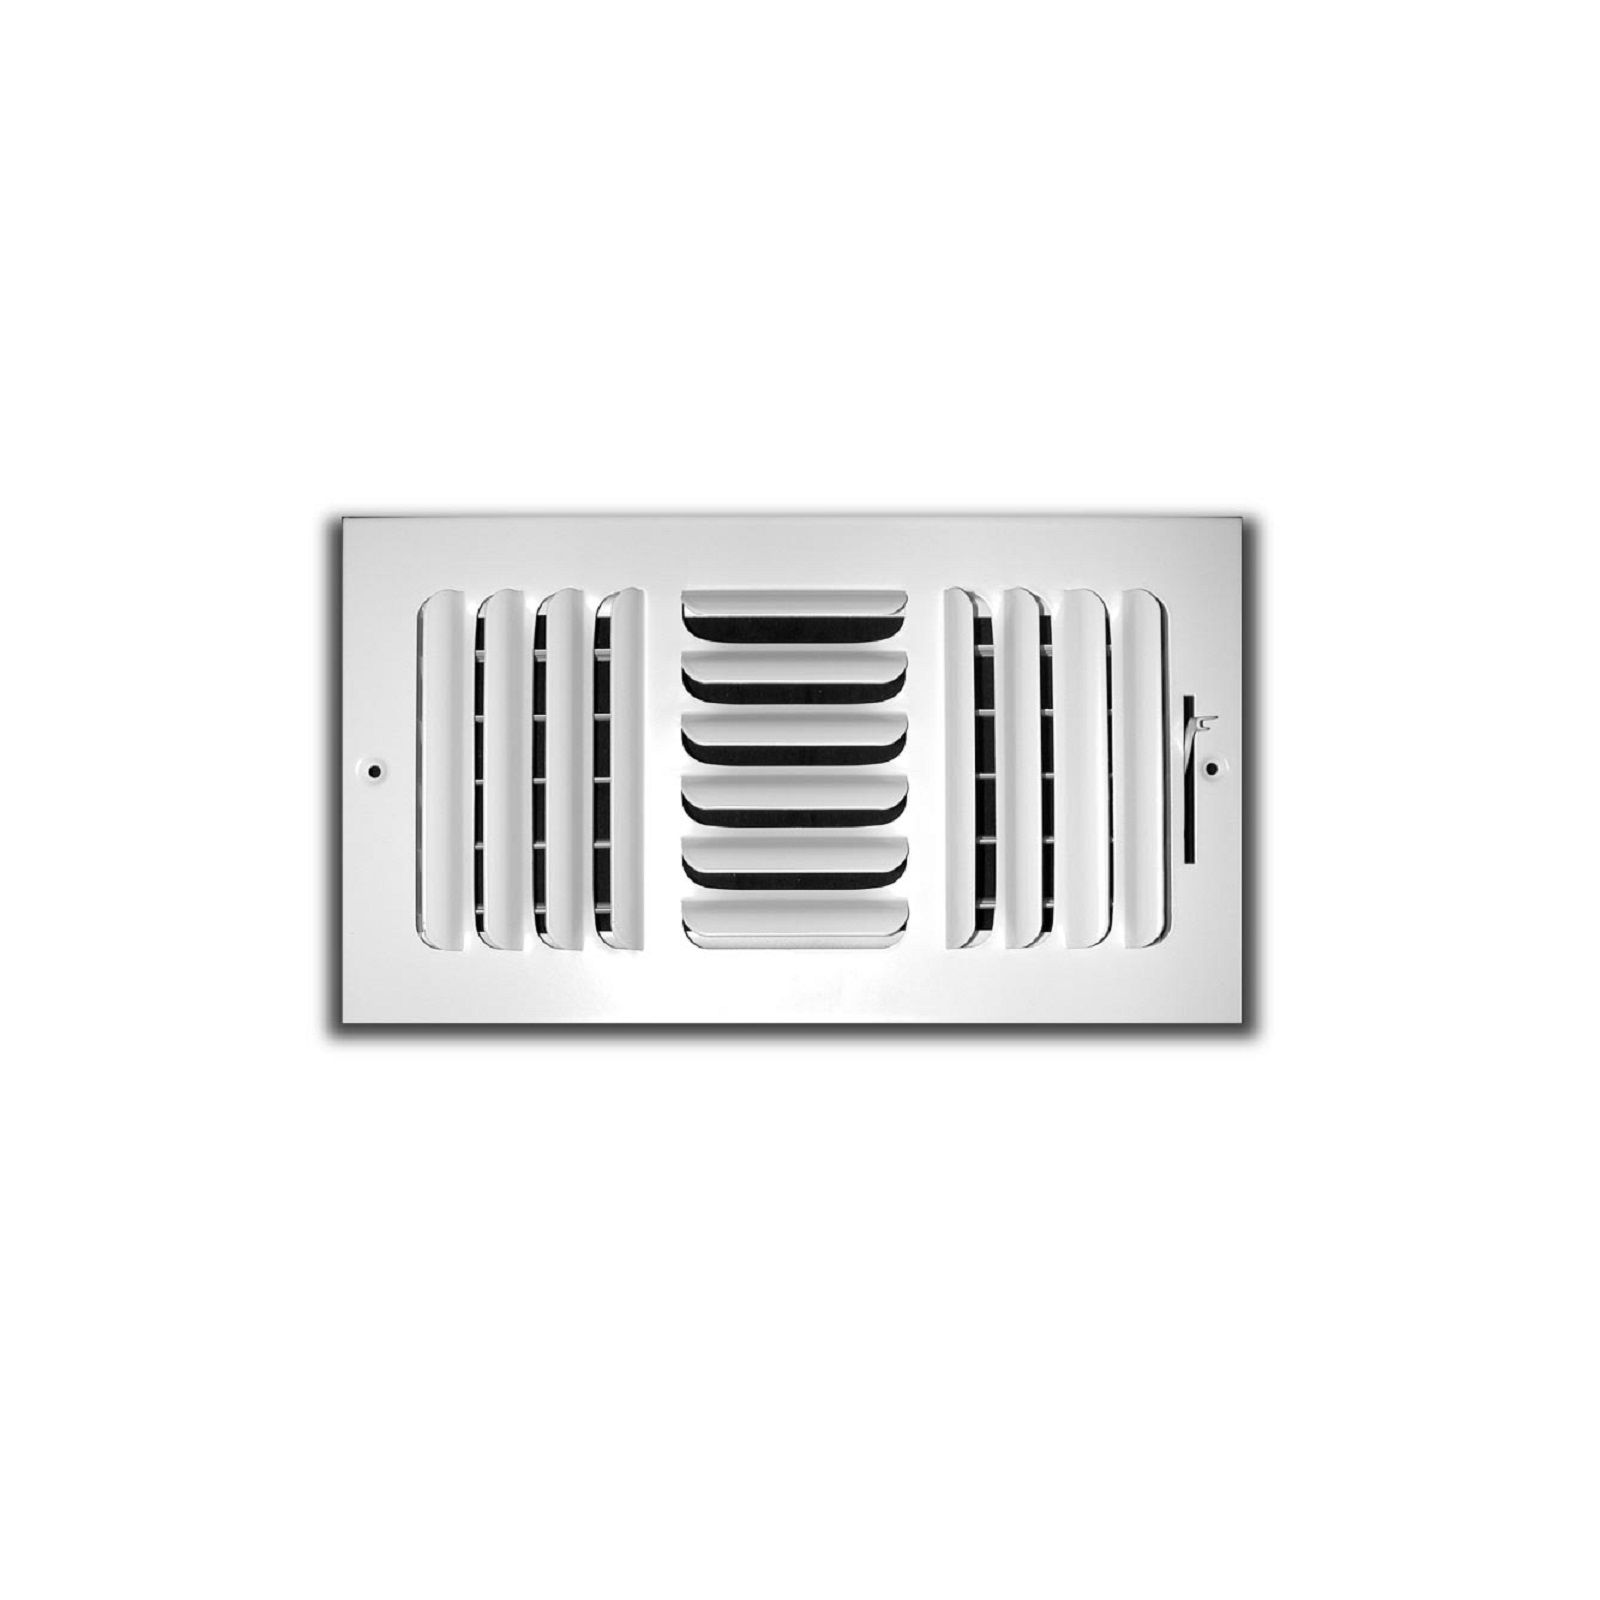 "TRUaire 403M 12X06 - Fixed Curved Blade Wall/Ceiling Register With Multi Shutter Damper, 3-Way, White, 12"" X 06"""